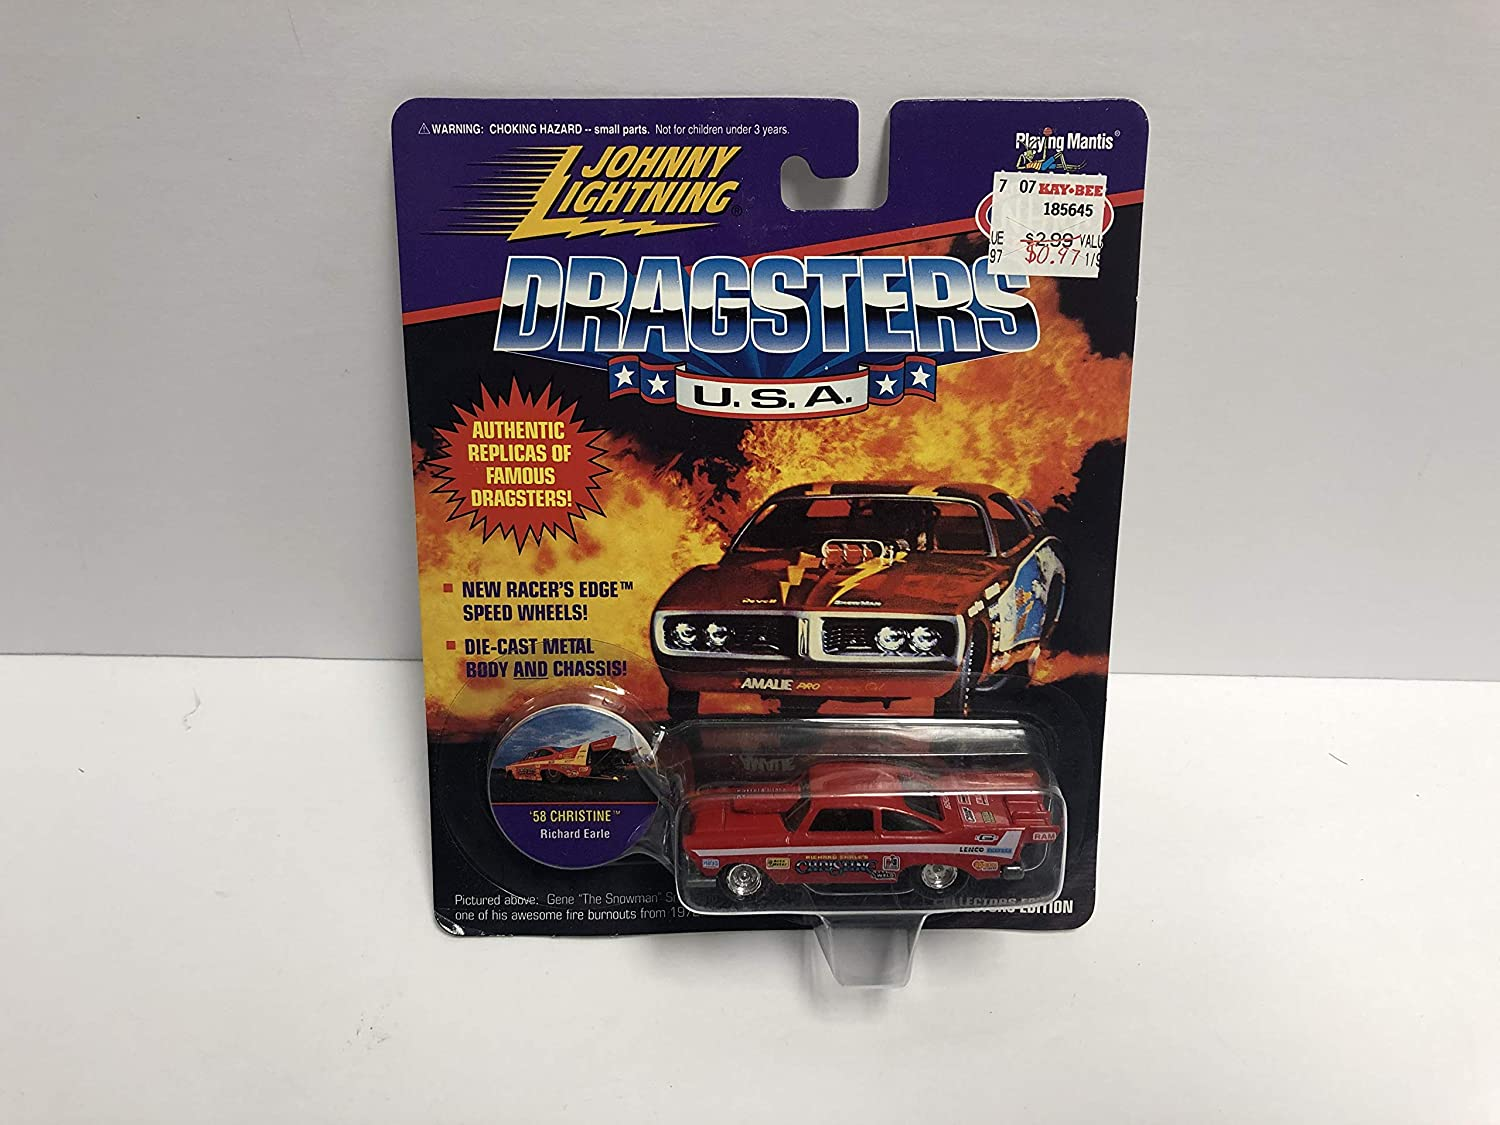 1958 58 CHRISTINE Richard Earle JOHNNY LIGHTNING 1995 NHRA Dragsters USA Limited Edition die-cast with Collectible disc